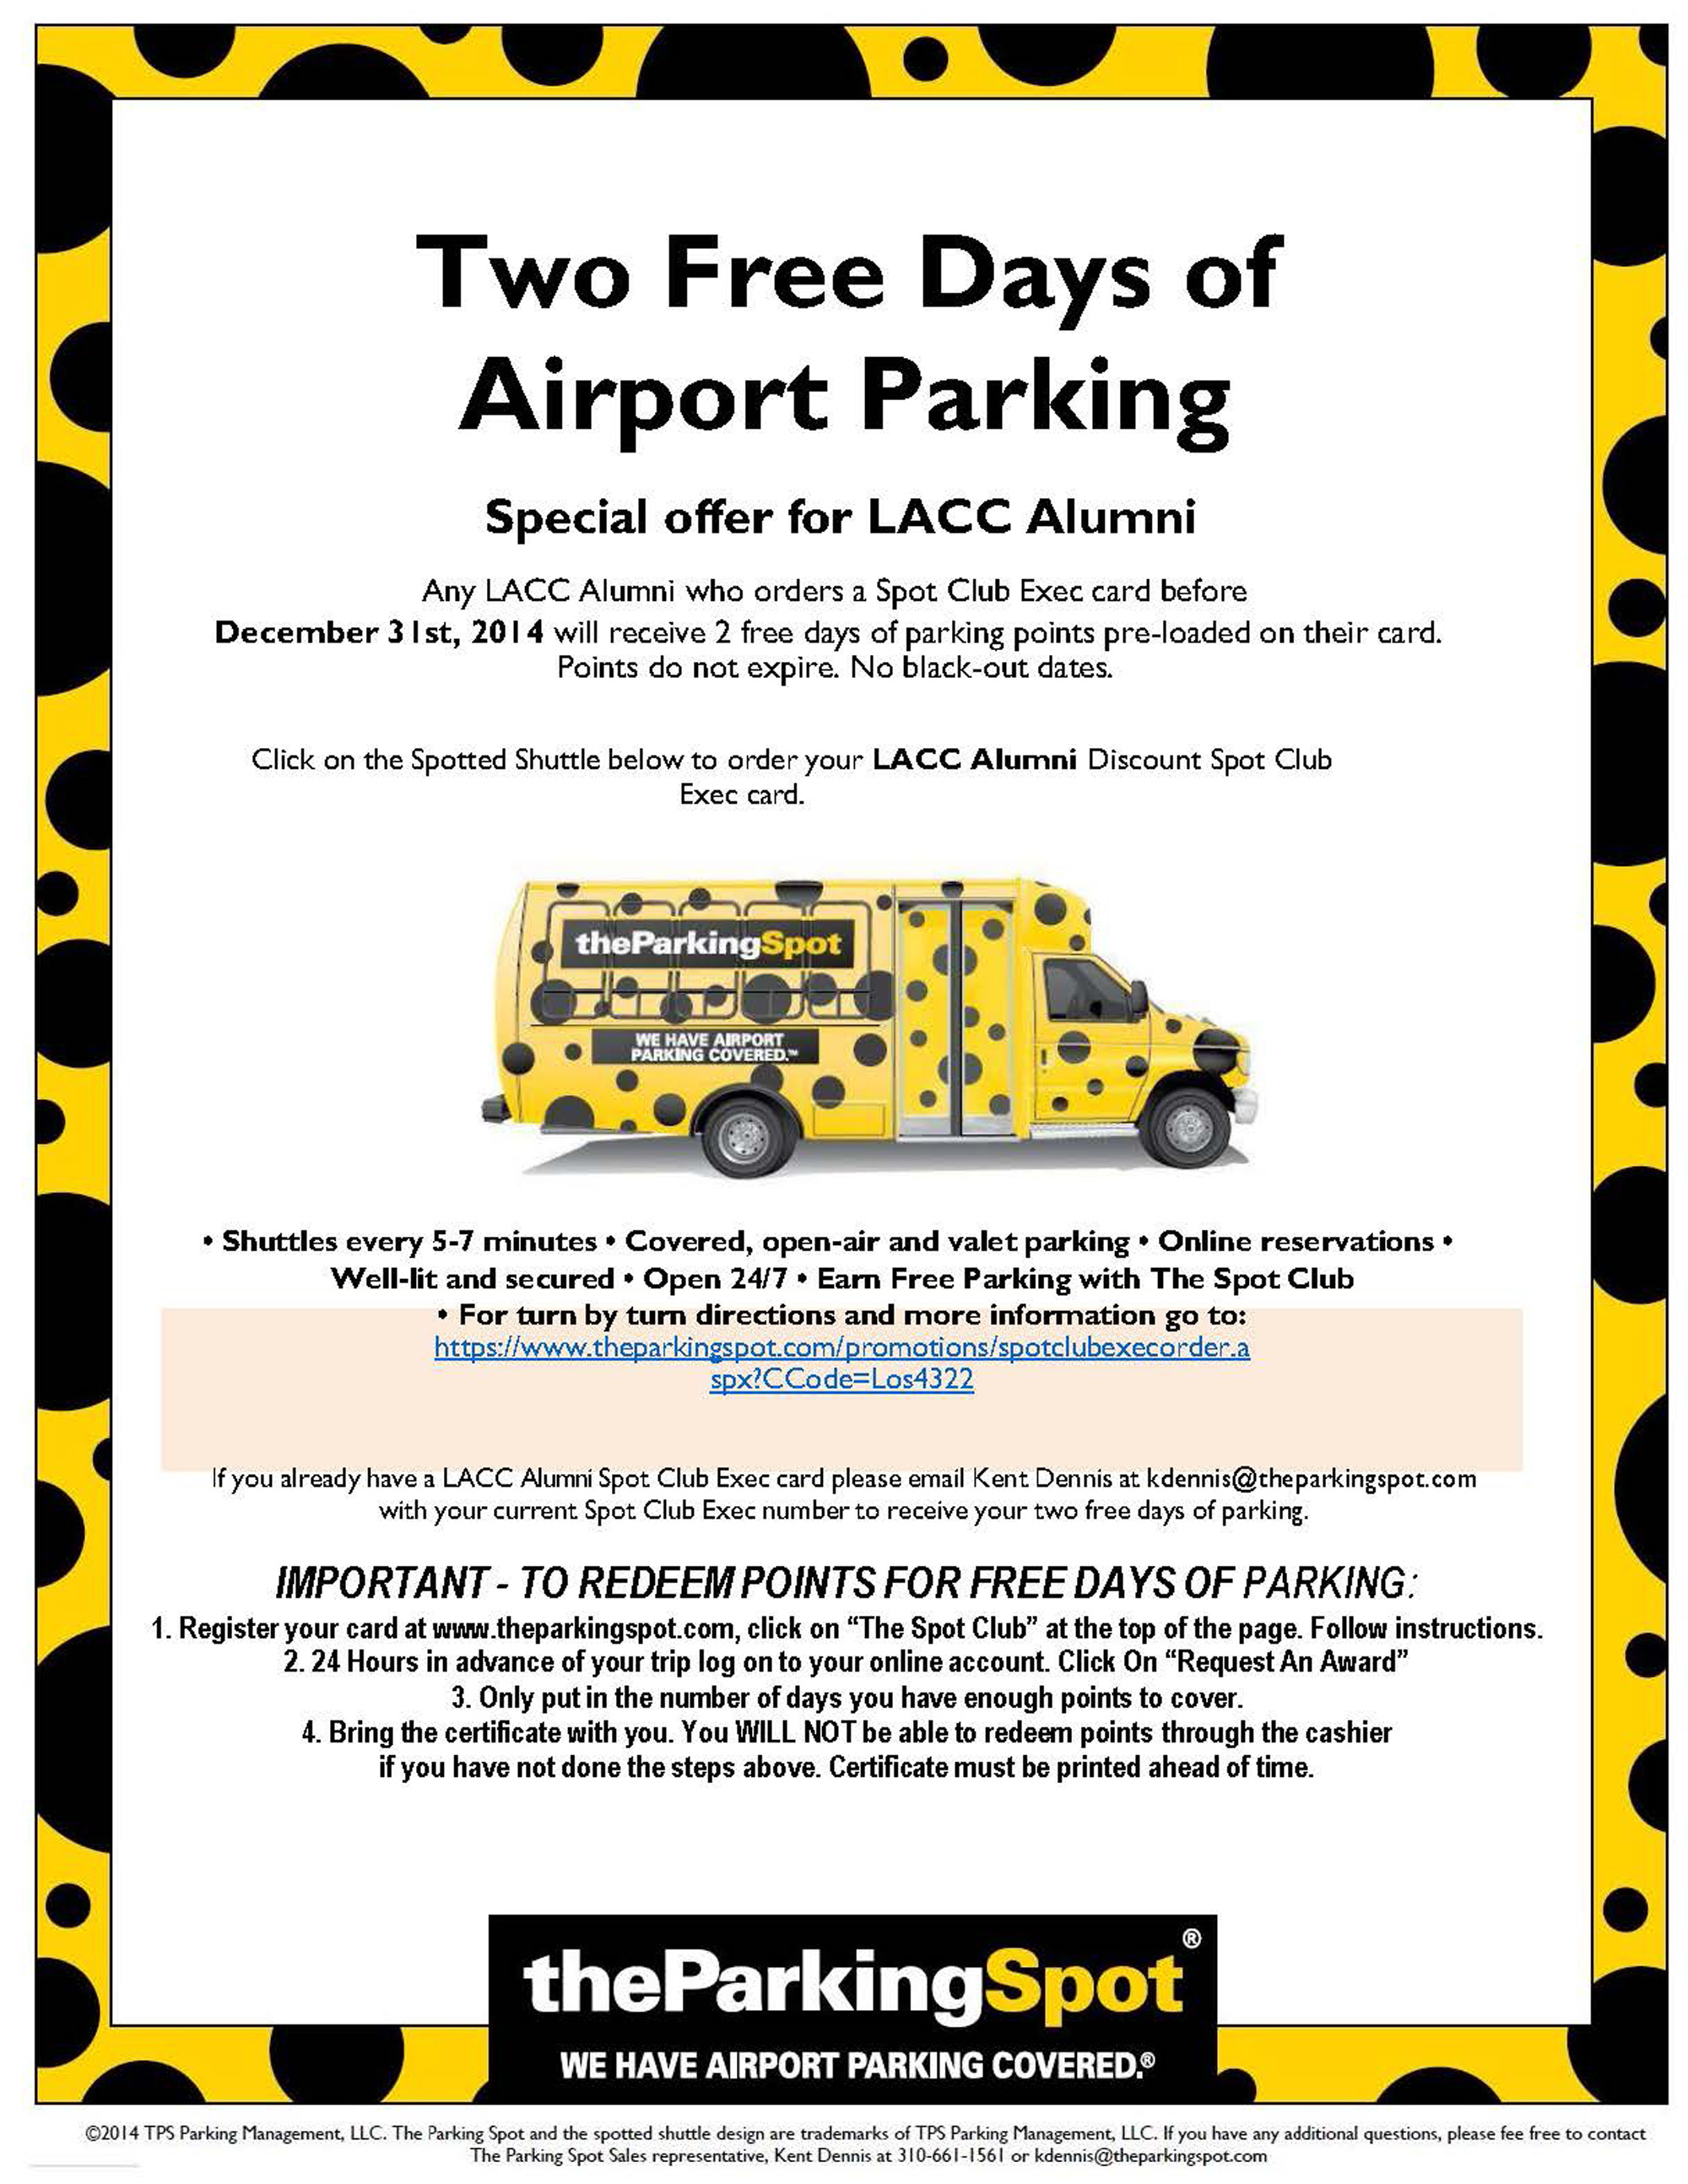 LACC Alumni Two-Day Parking Deal | Los Angeles City College Foundation